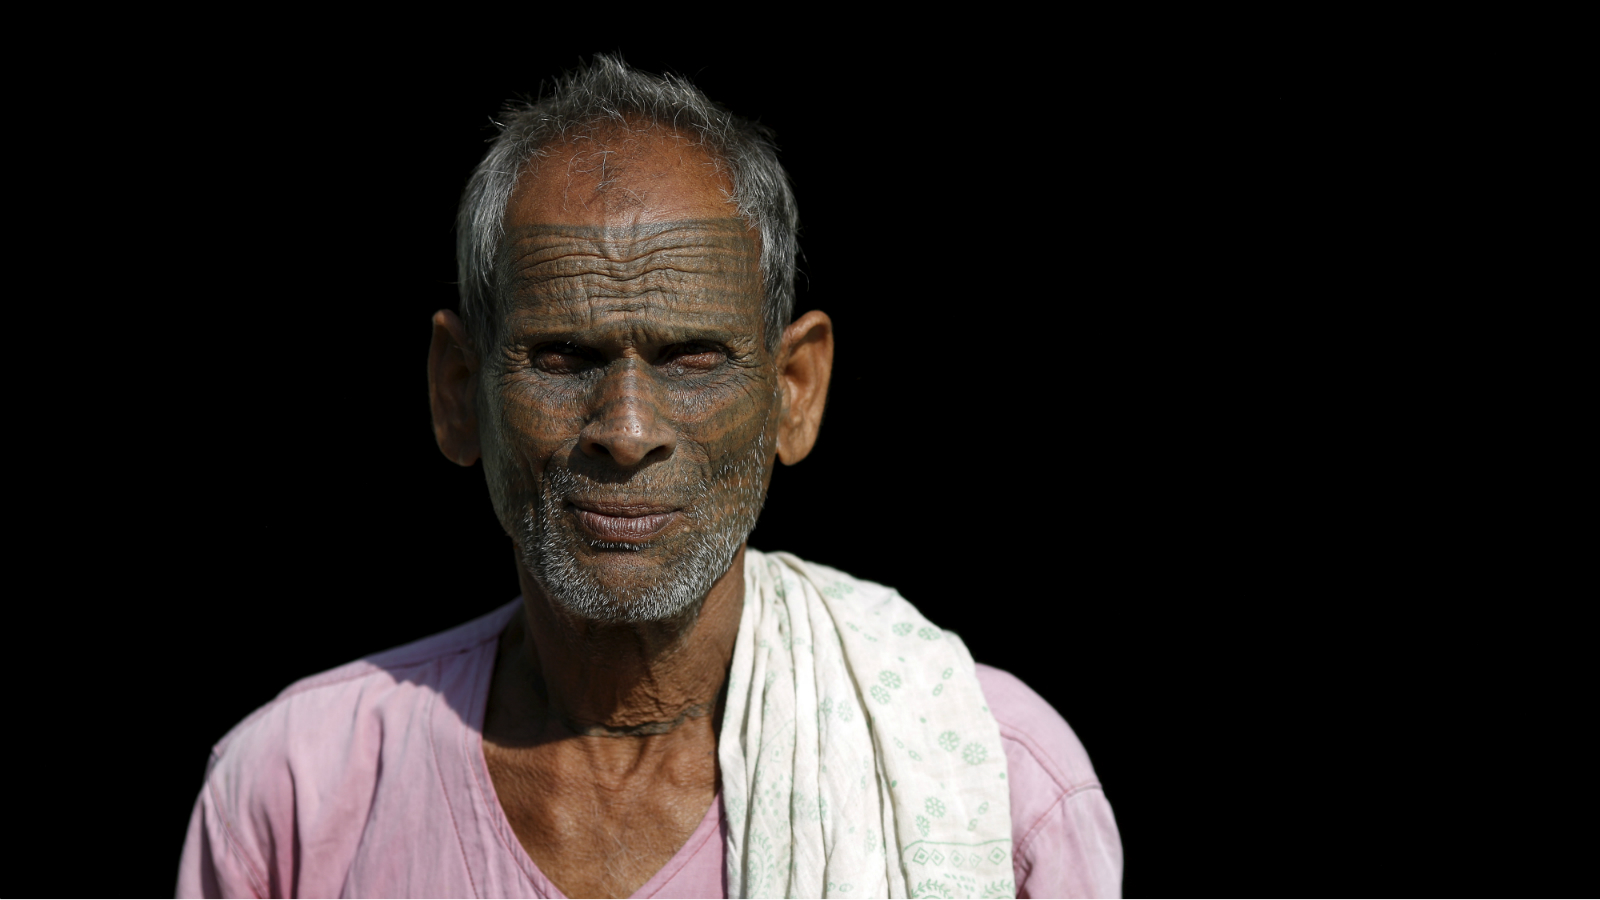 Bishram, 70, a follower of Ramnami Samaj, who has tattooed the name of the Hindu god Ram on his face, poses for a picture outside his house in the village of Arjuni, in the eastern state of Chhattisgarh, India, November 15, 2015. REUTERS/Adnan Abidi